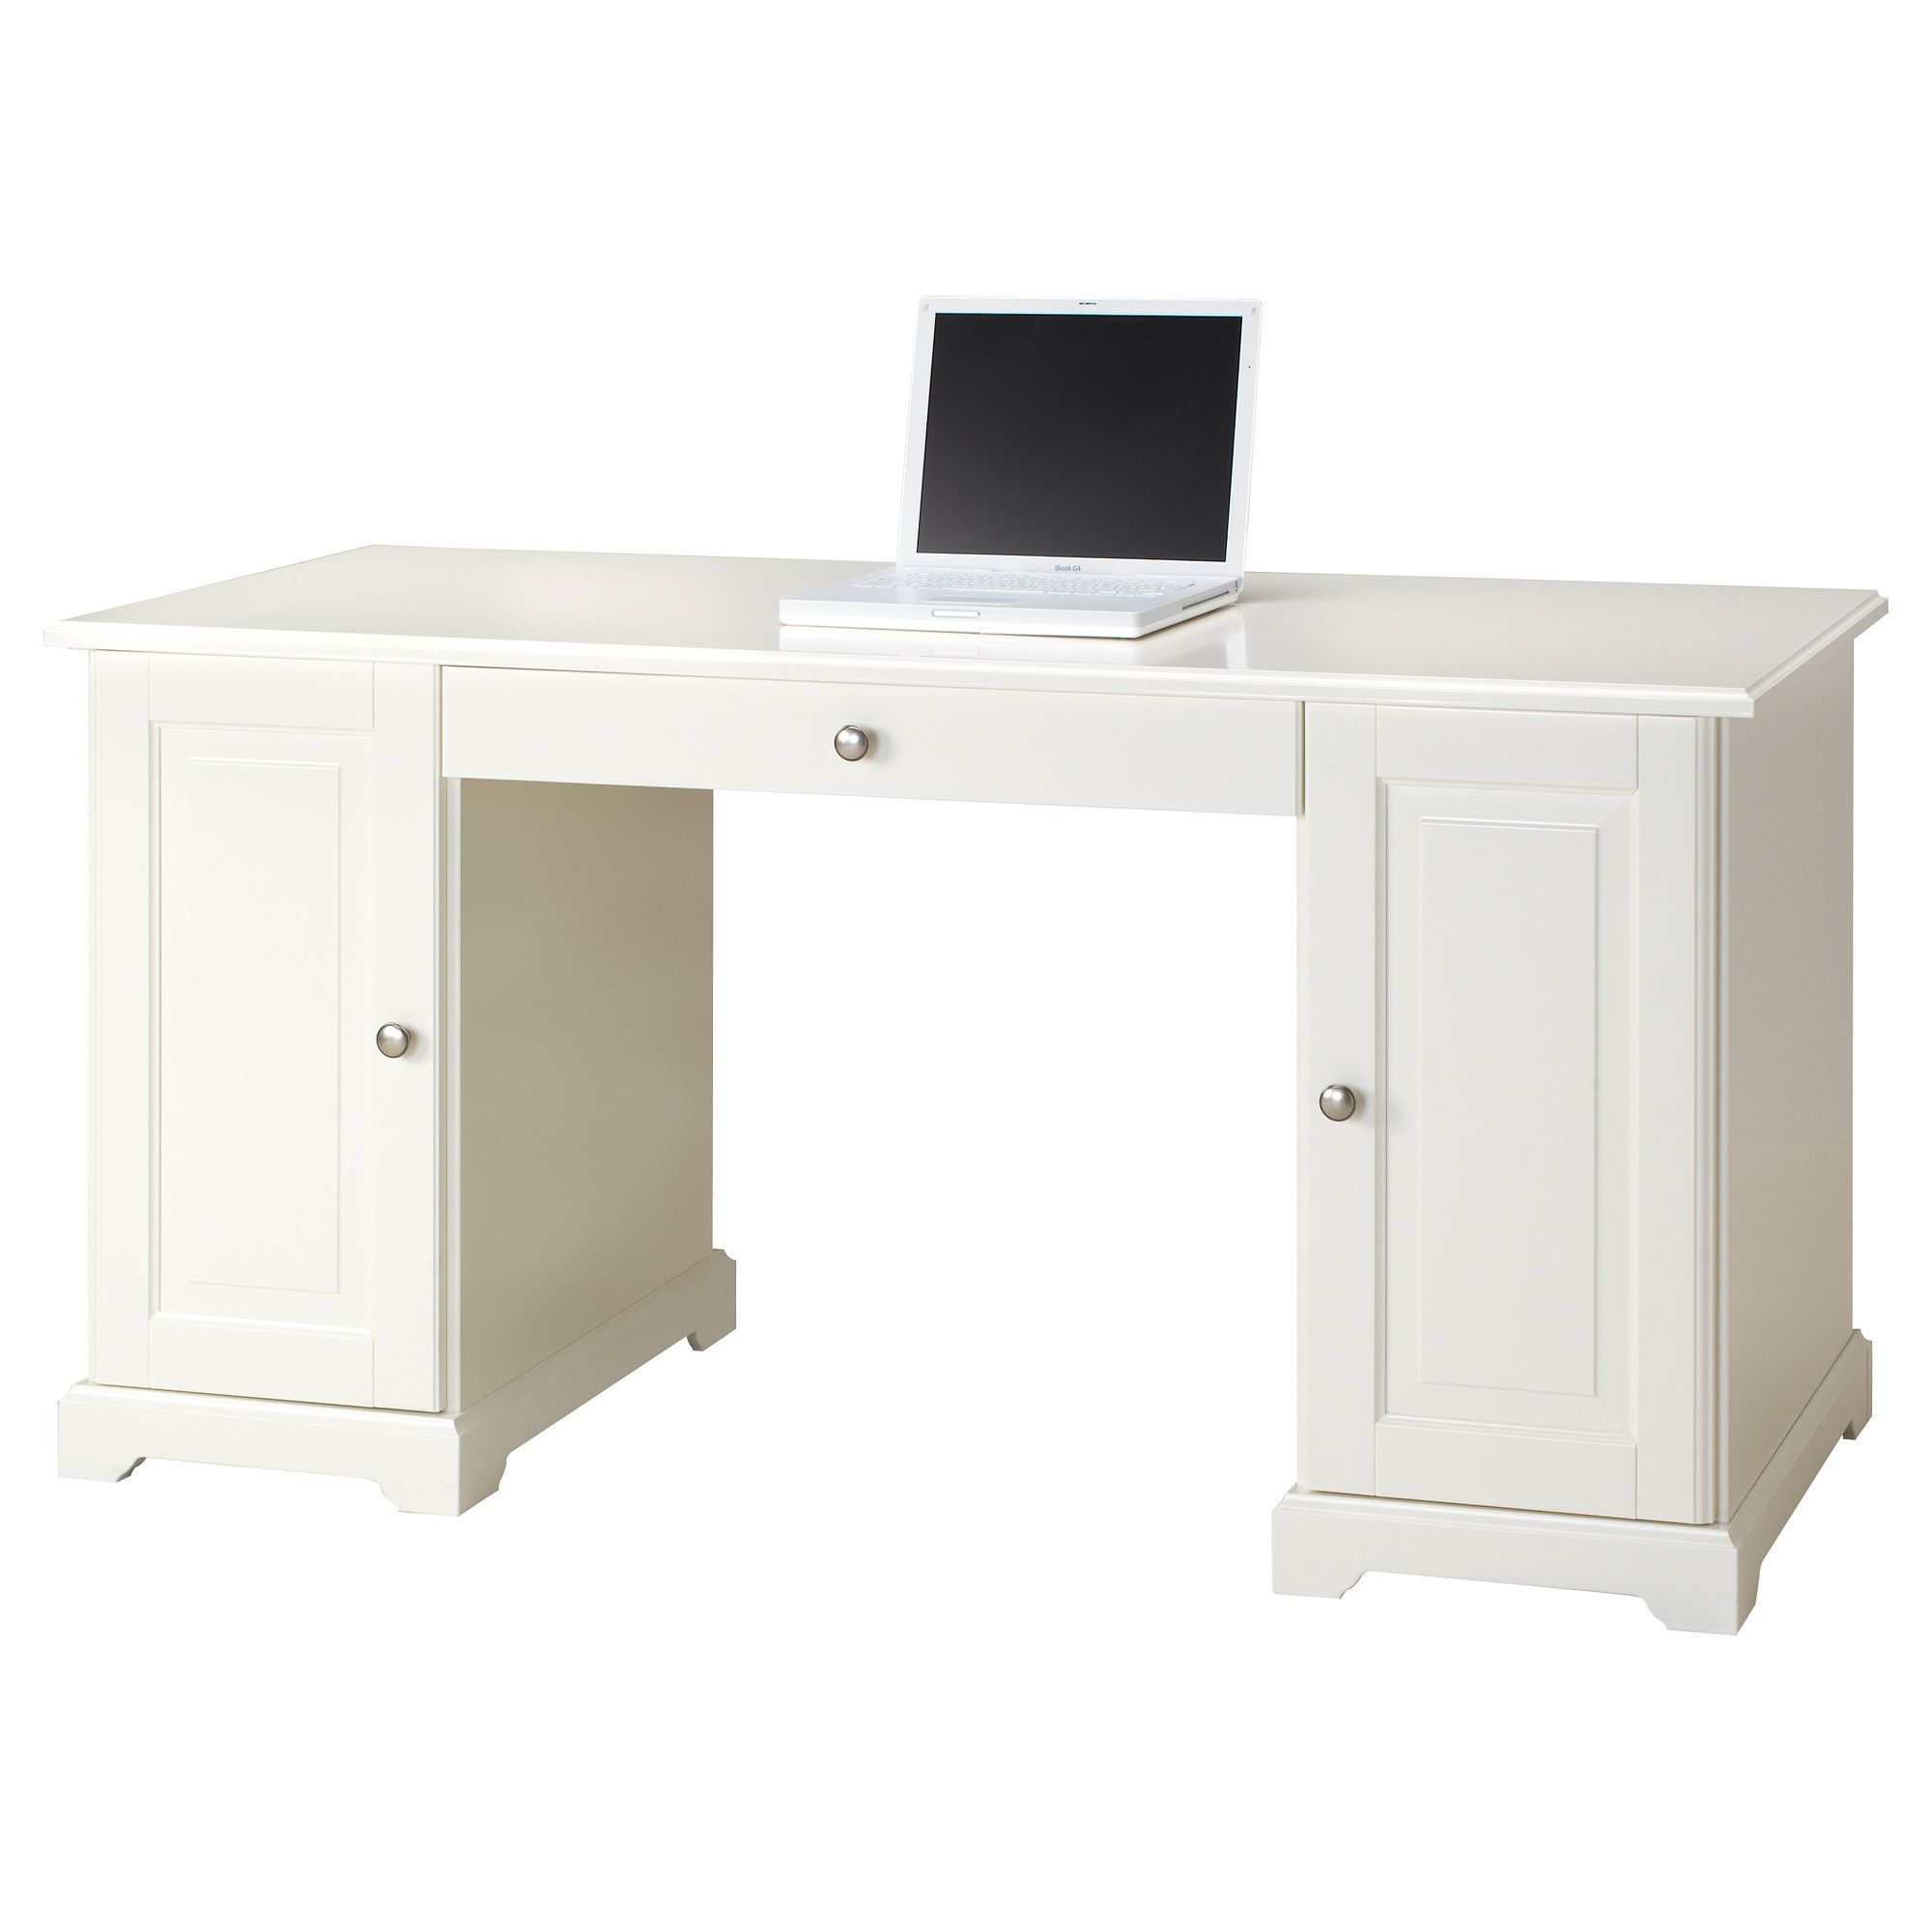 Ikéa Bureaux Liatorp Desk Ikea Going To Try To Use This As A Dresser